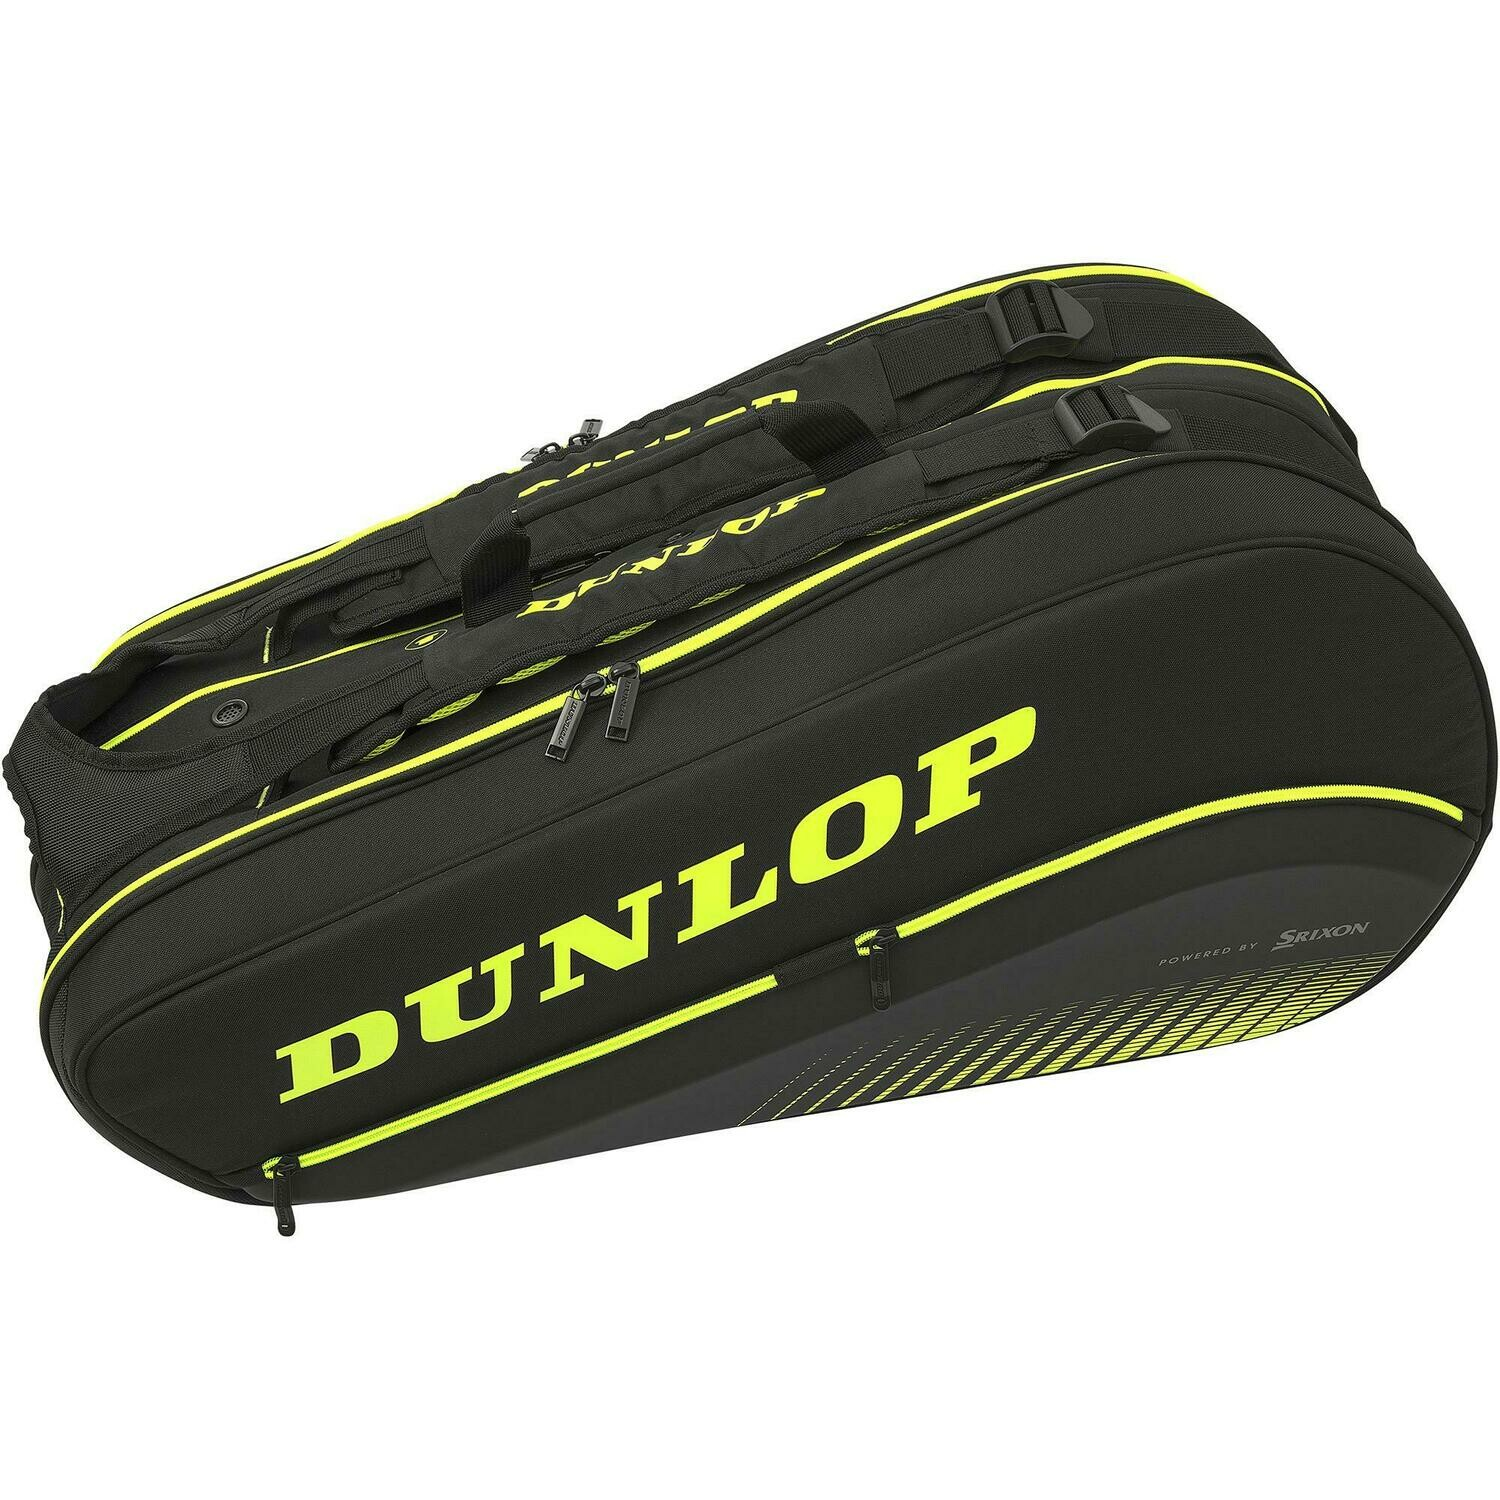 Dunlop SX Performance Thermo 8 Racket Bag - Yellow/Black